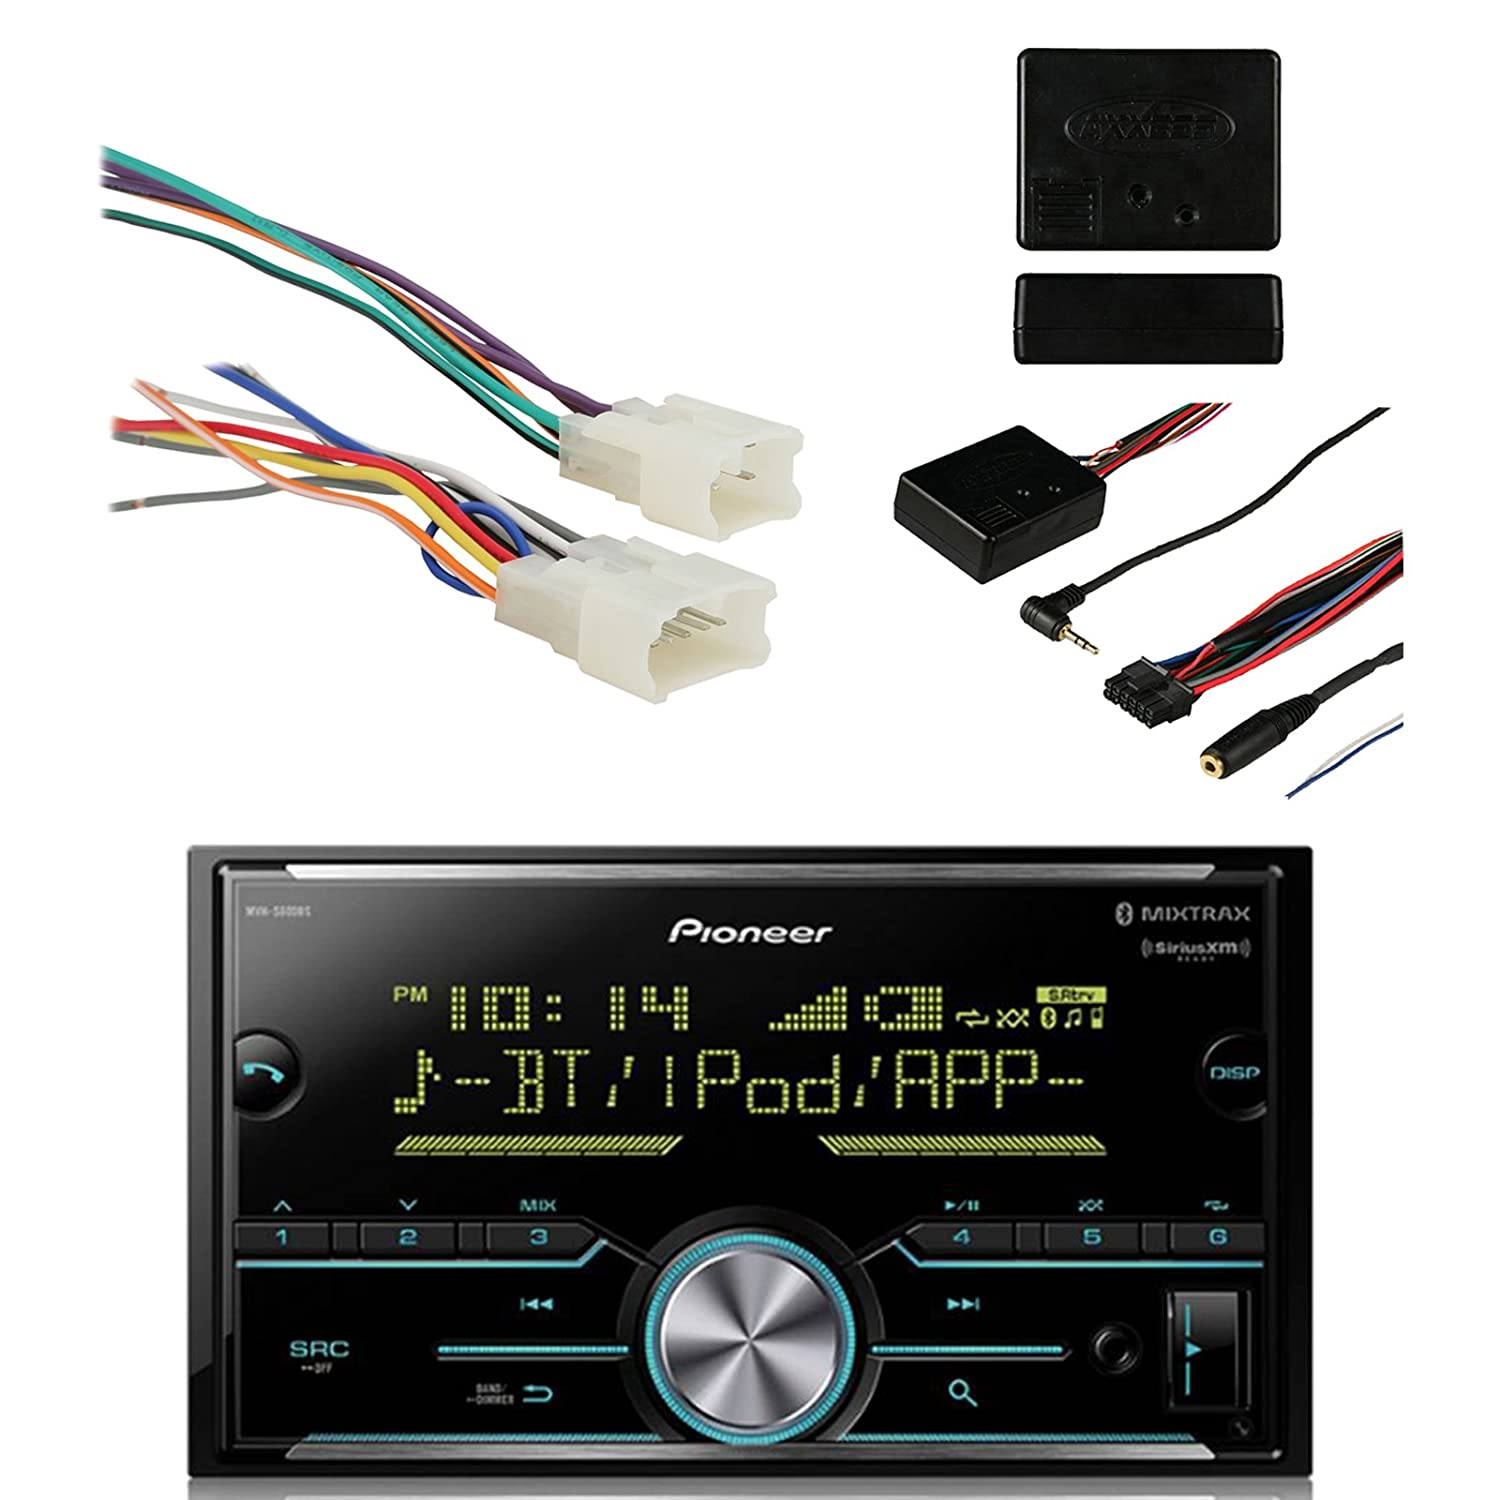 Pioneer Vehicle Digital Media Double Din Receiver With Jvc Wiring Harness Nz Bluetooth Black Metra Radio For Toyota 87 Up Power 4 Speaker And